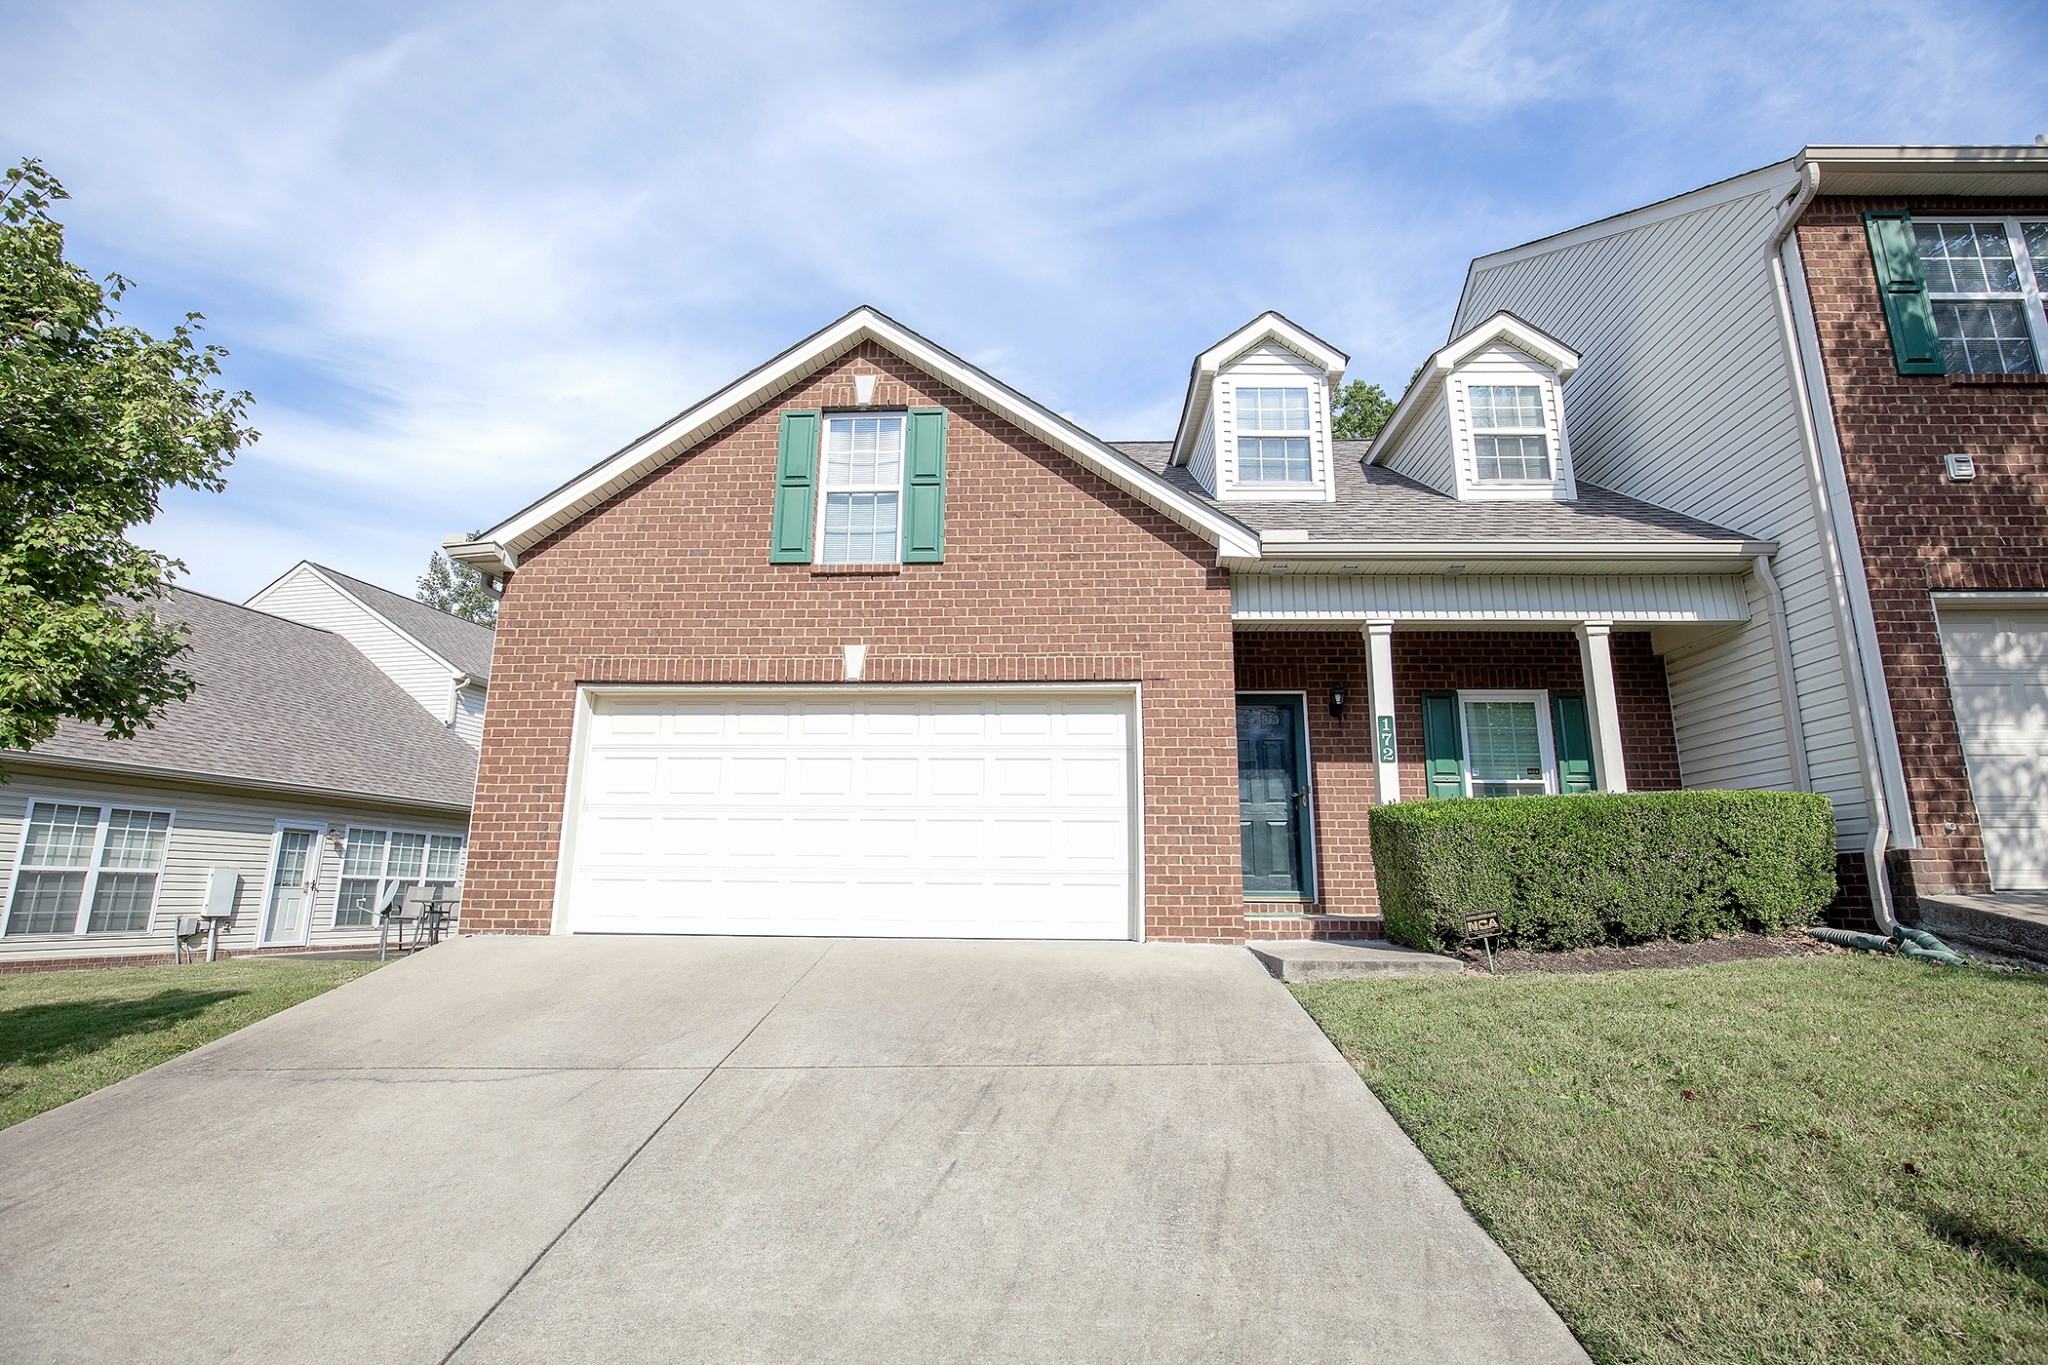 Wonderful one owner 3 bedroom condo close to everything you could possibly need! Close to the airport and downtown Nashville. Two car carage & end unit! Appliances stay. Immediate move in. Welcome Home!